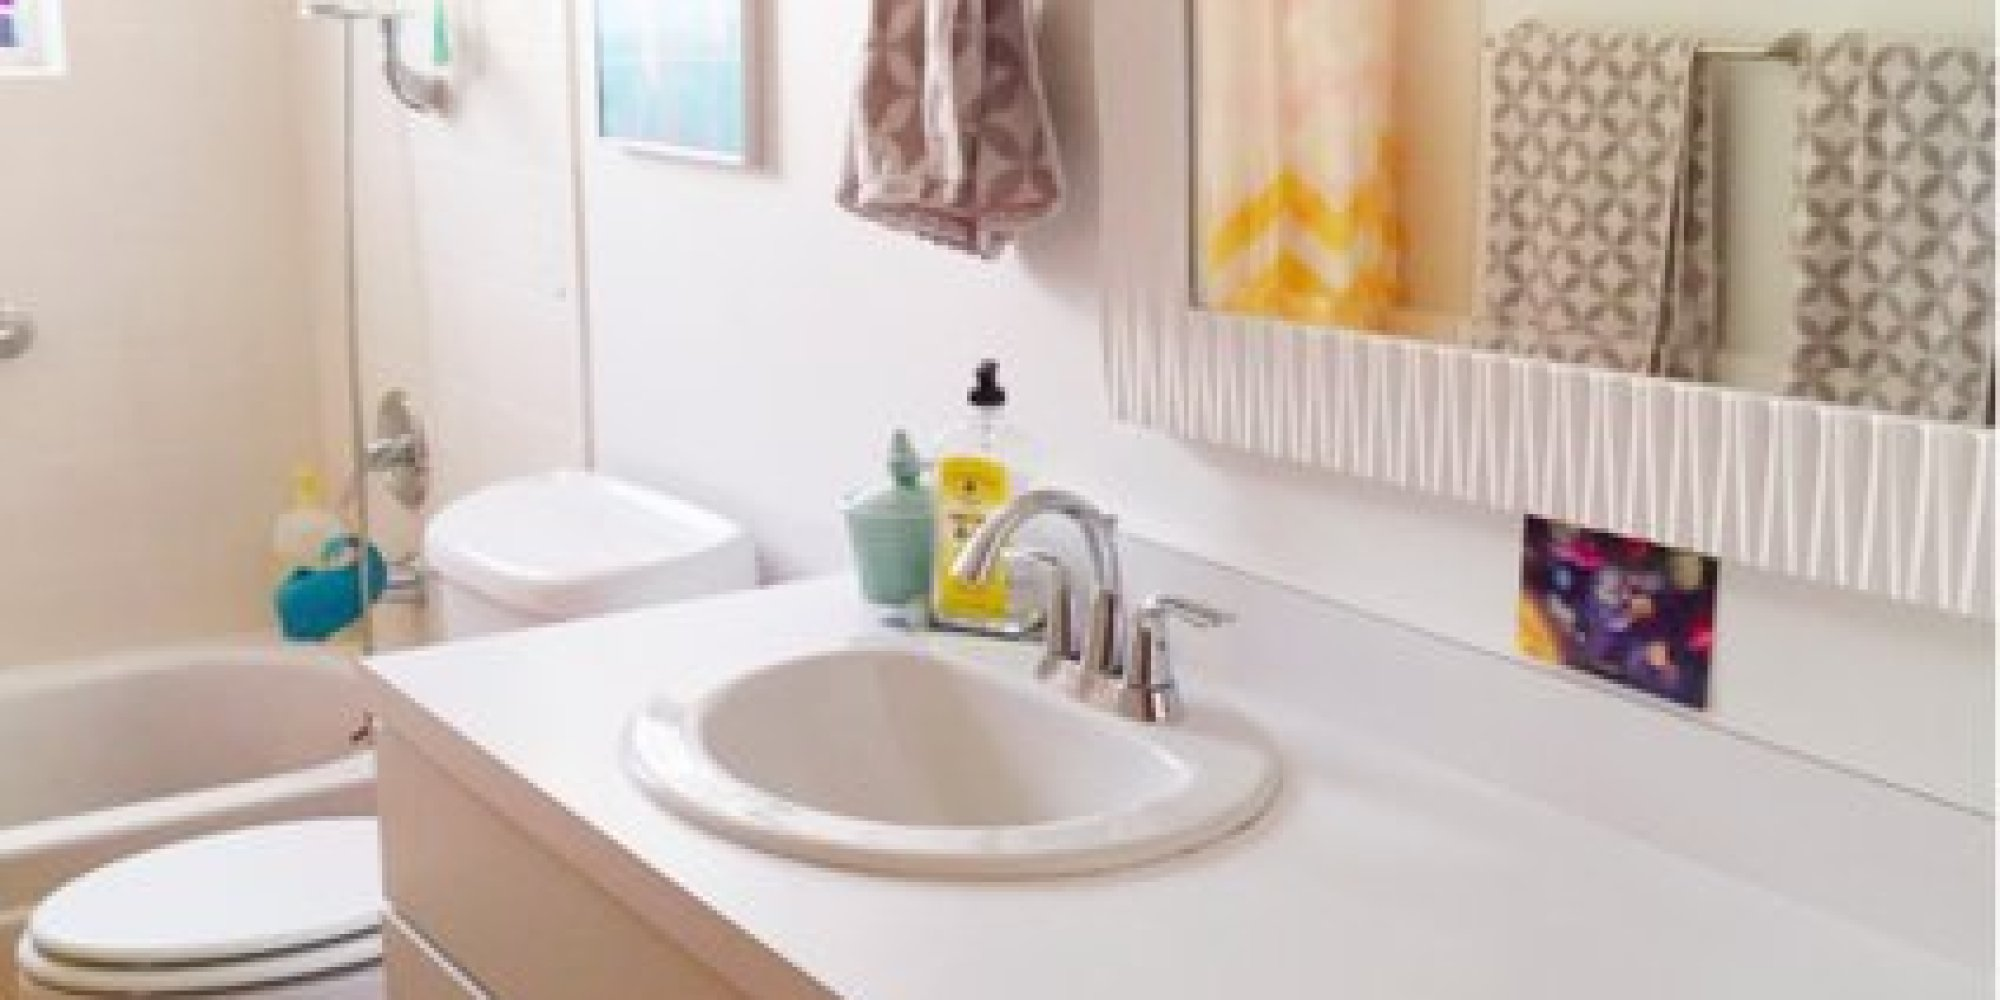 Bathroom Makeovers On A Budget South Africa a budget bathroom makeover: from pink toilets to pops of color